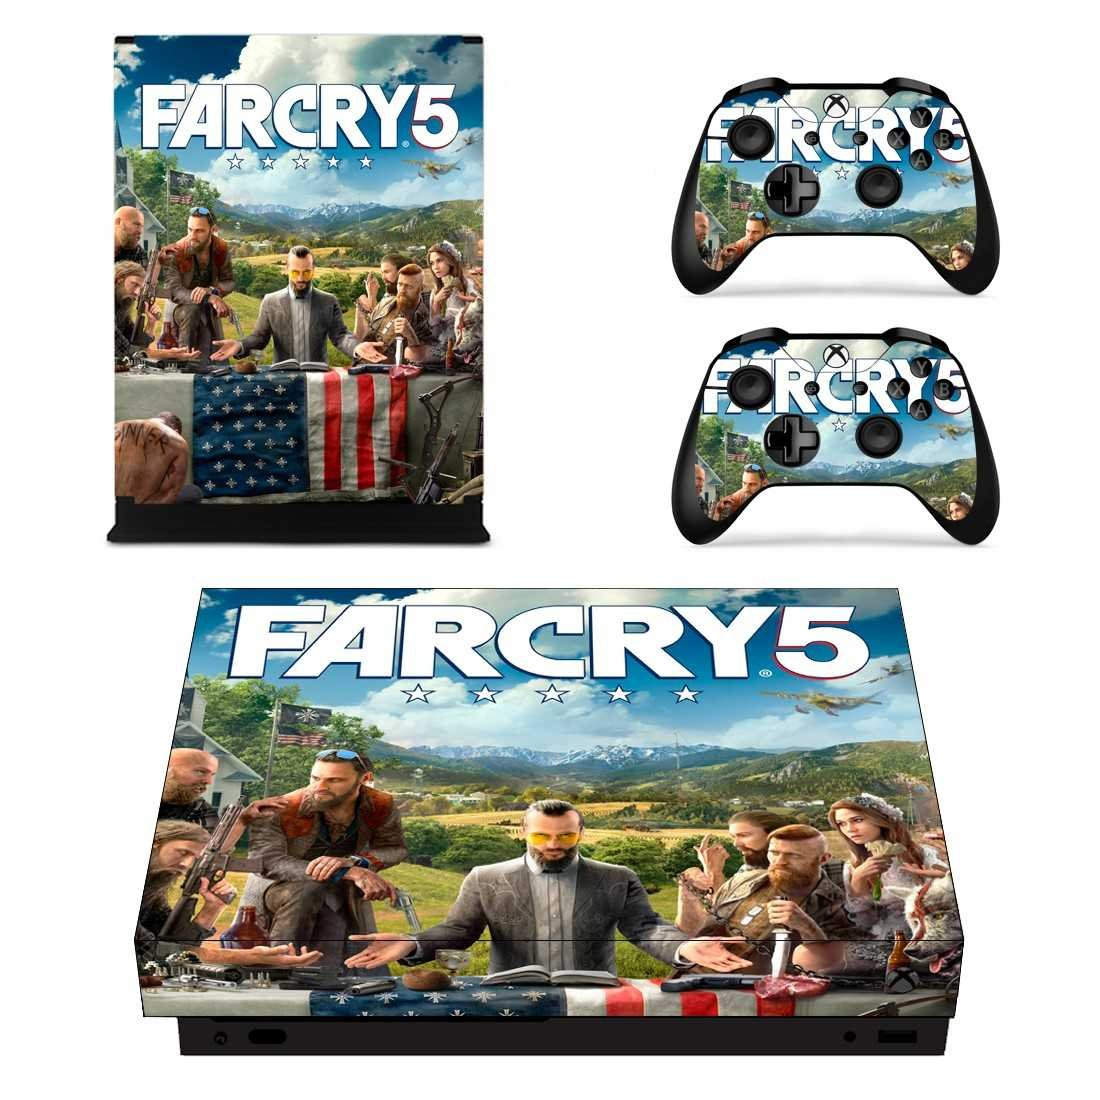 FarCry 5 Decal Vinyl Skin for Xbox One X Edition